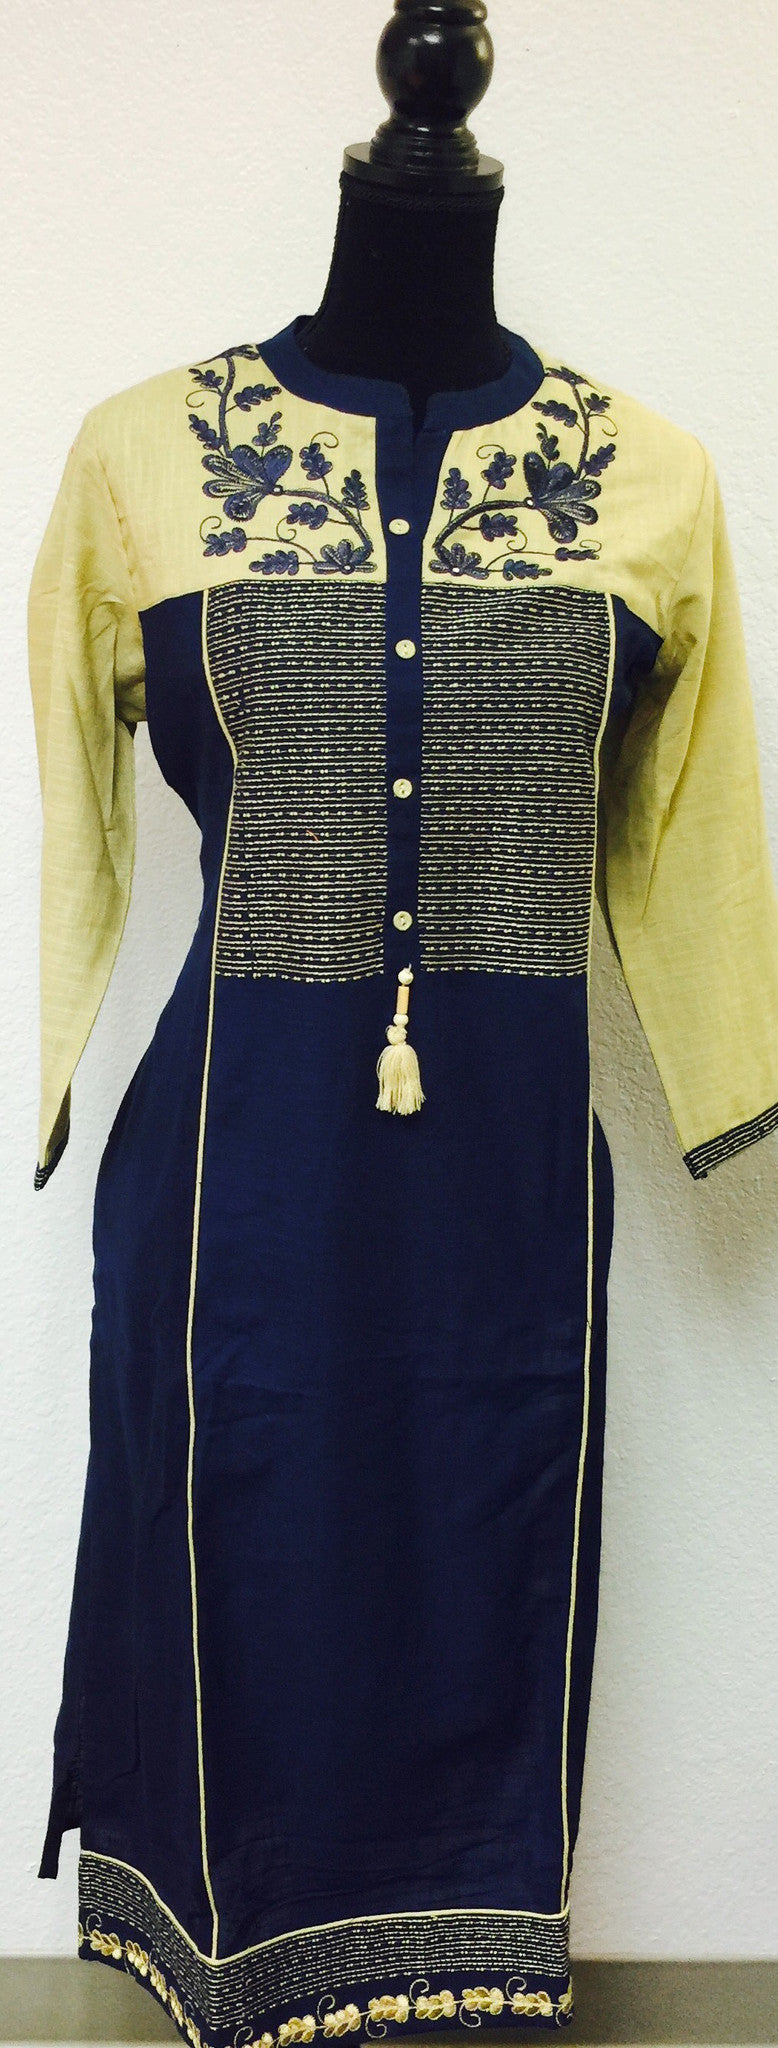 Fdn0140 EMBROIDERED KURTA